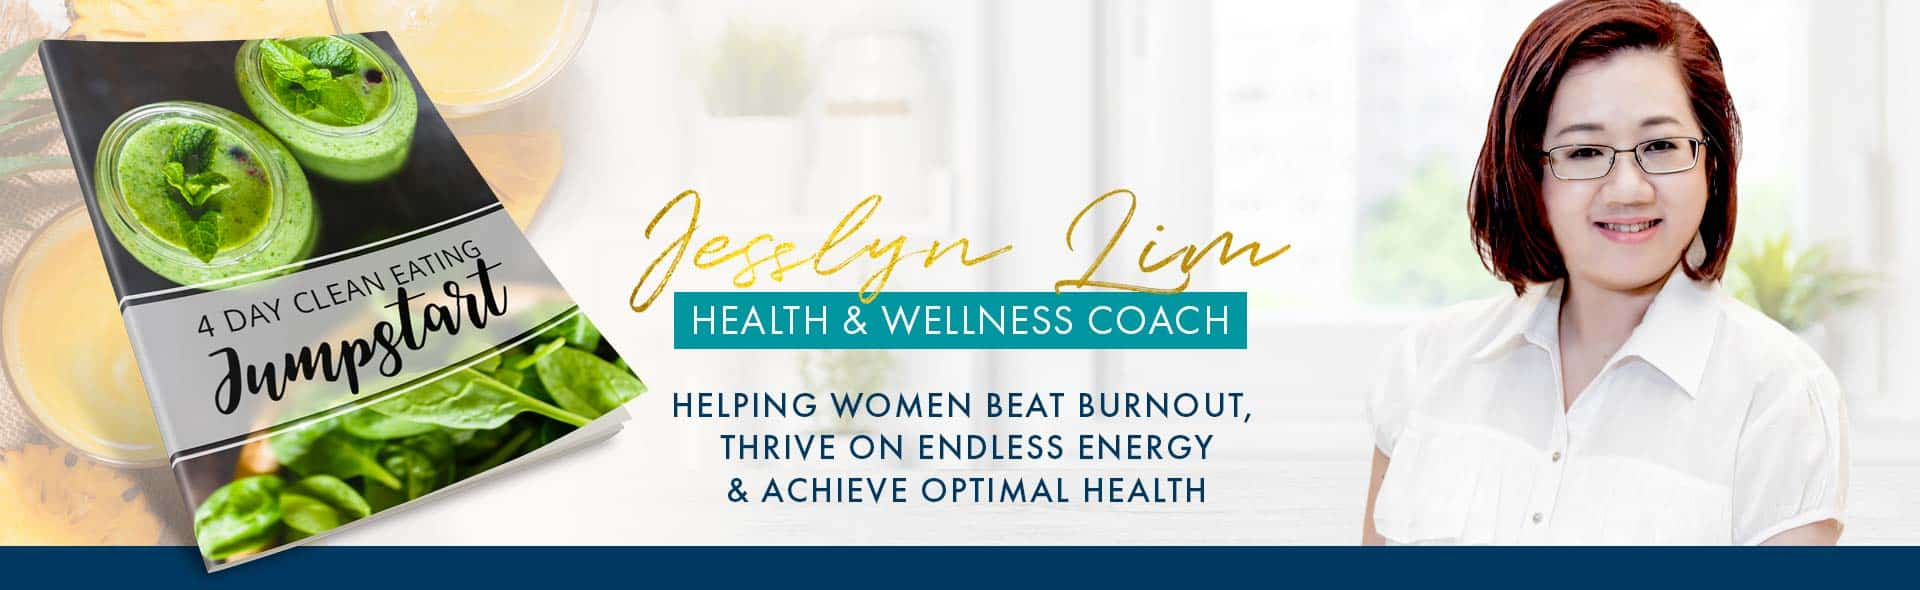 Jesslyn Lim Health Coach